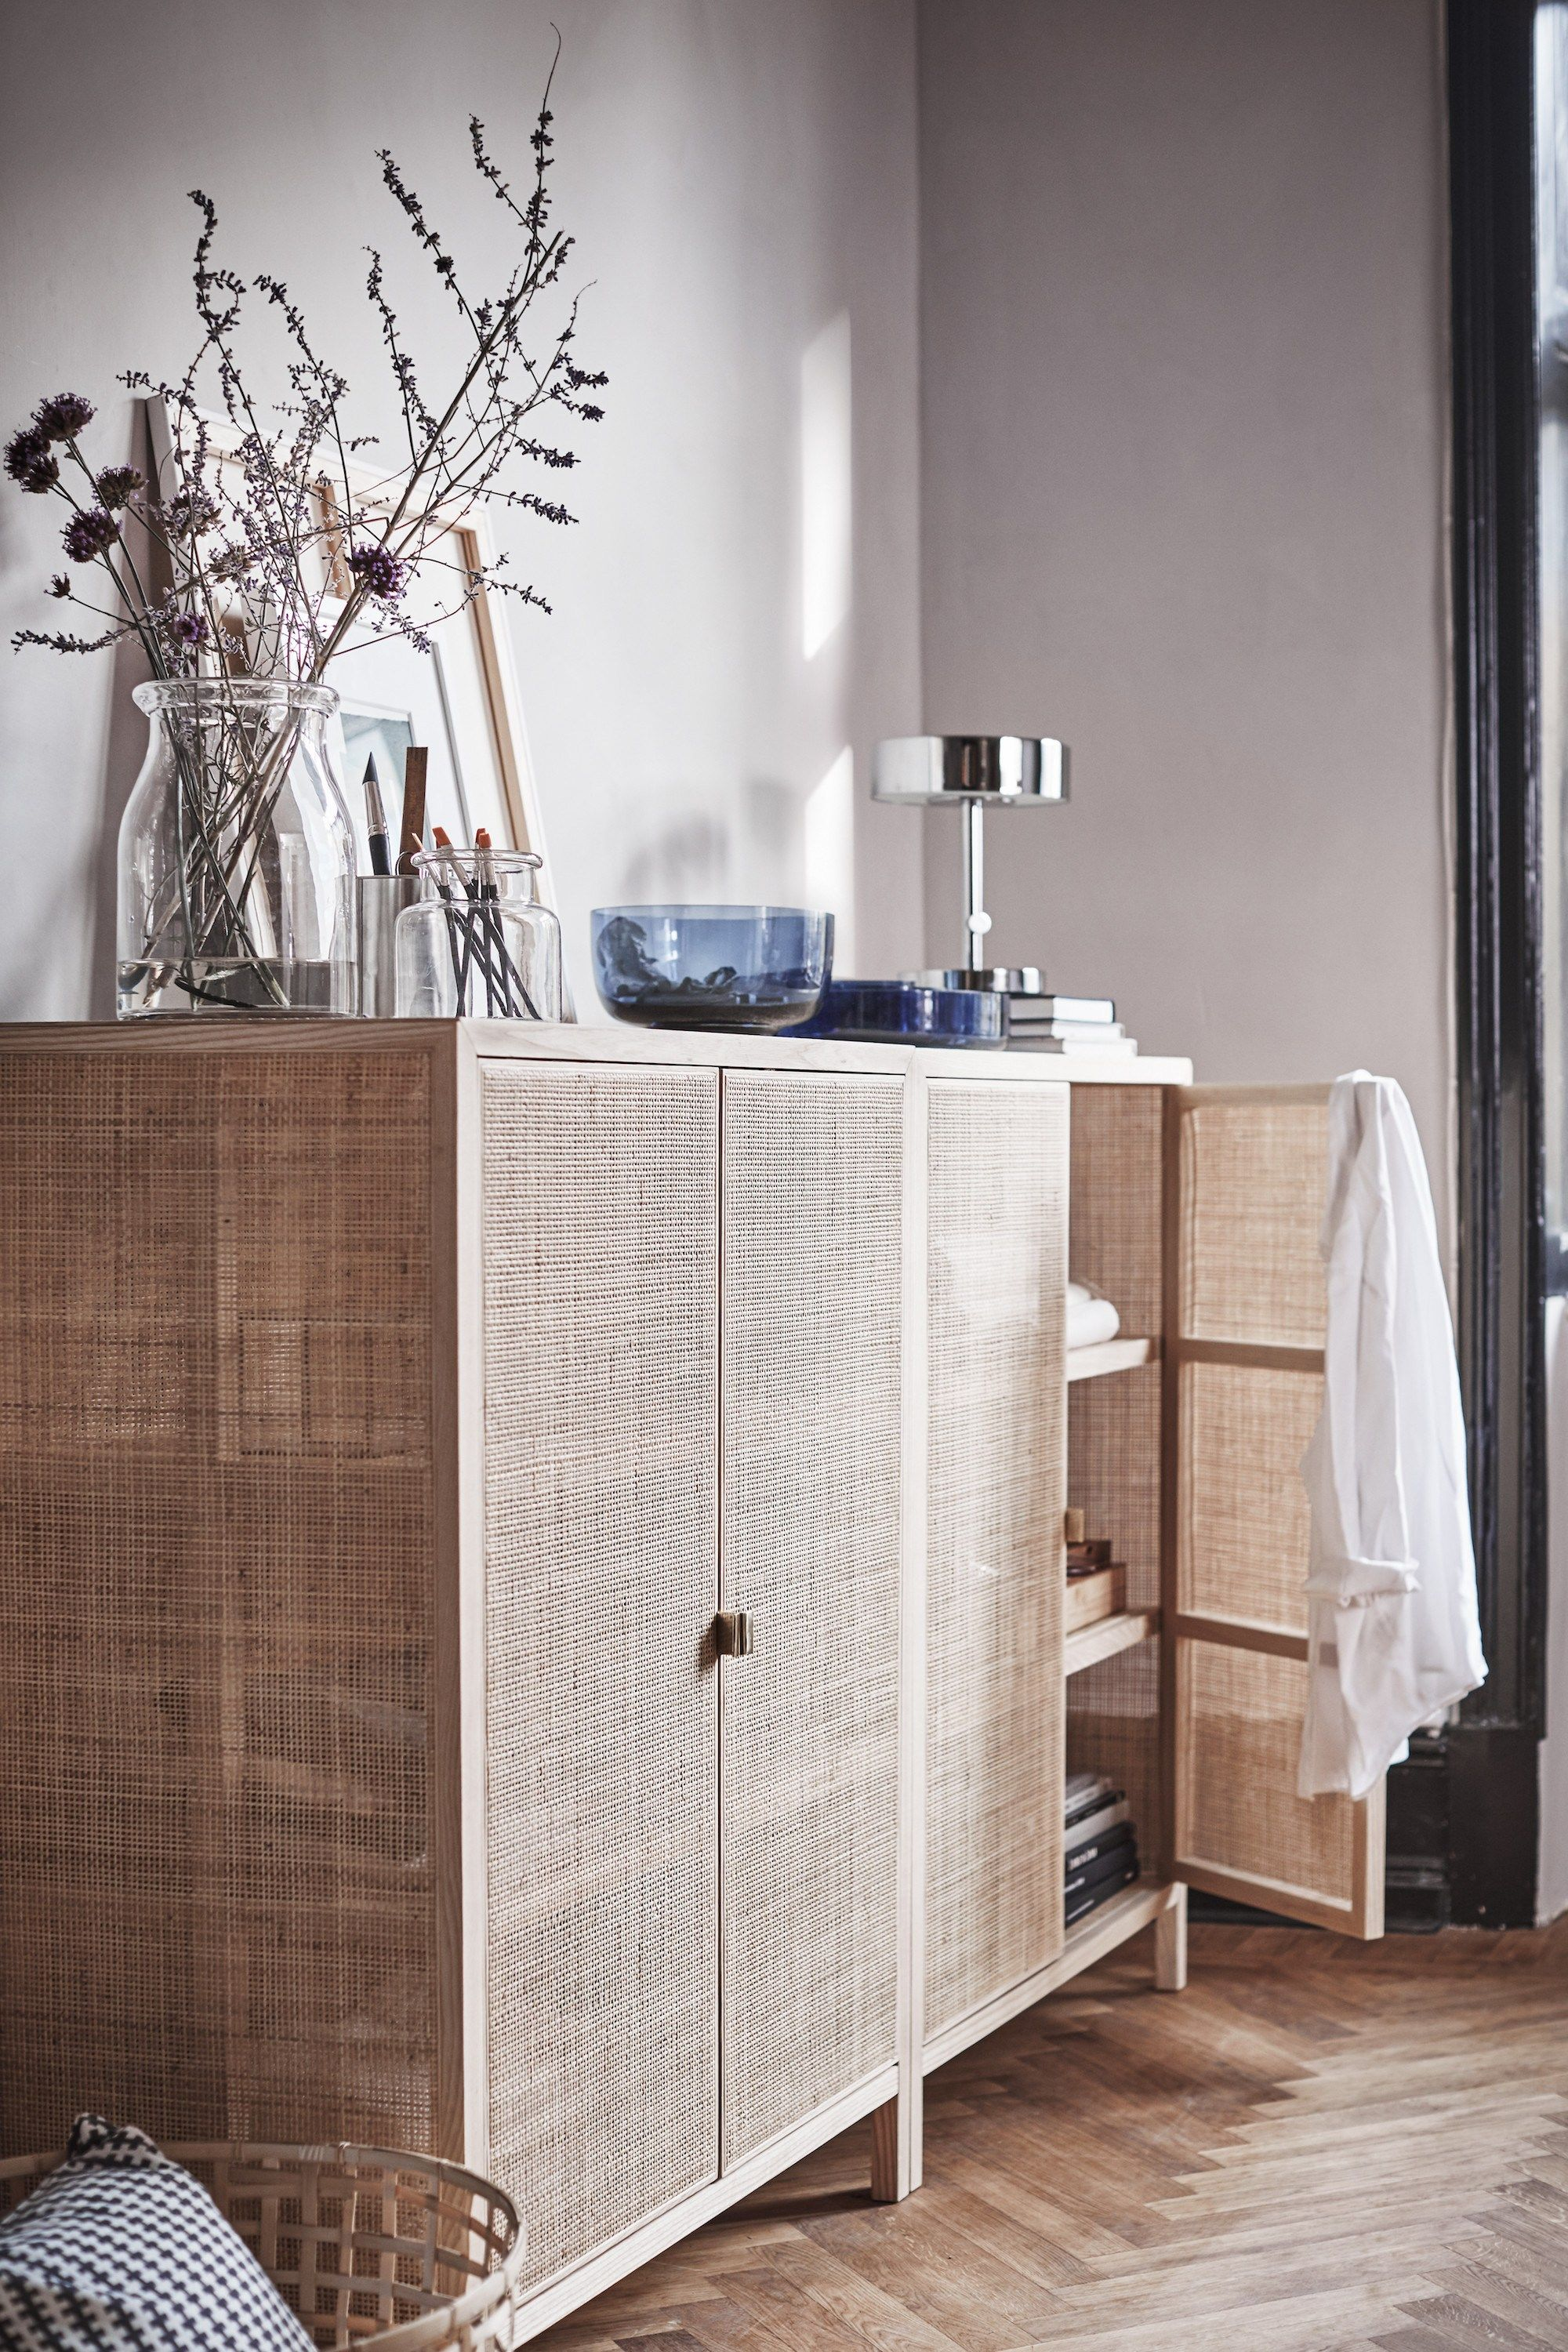 storage furniture with baskets ikea. Our Annual List Of Practical Favorites From The New Ikea Catalog, 2018 Edition. Find Wall Storage, An Affordable Desk Lamp, And Leather Drawer Pulls. Storage Furniture With Baskets B